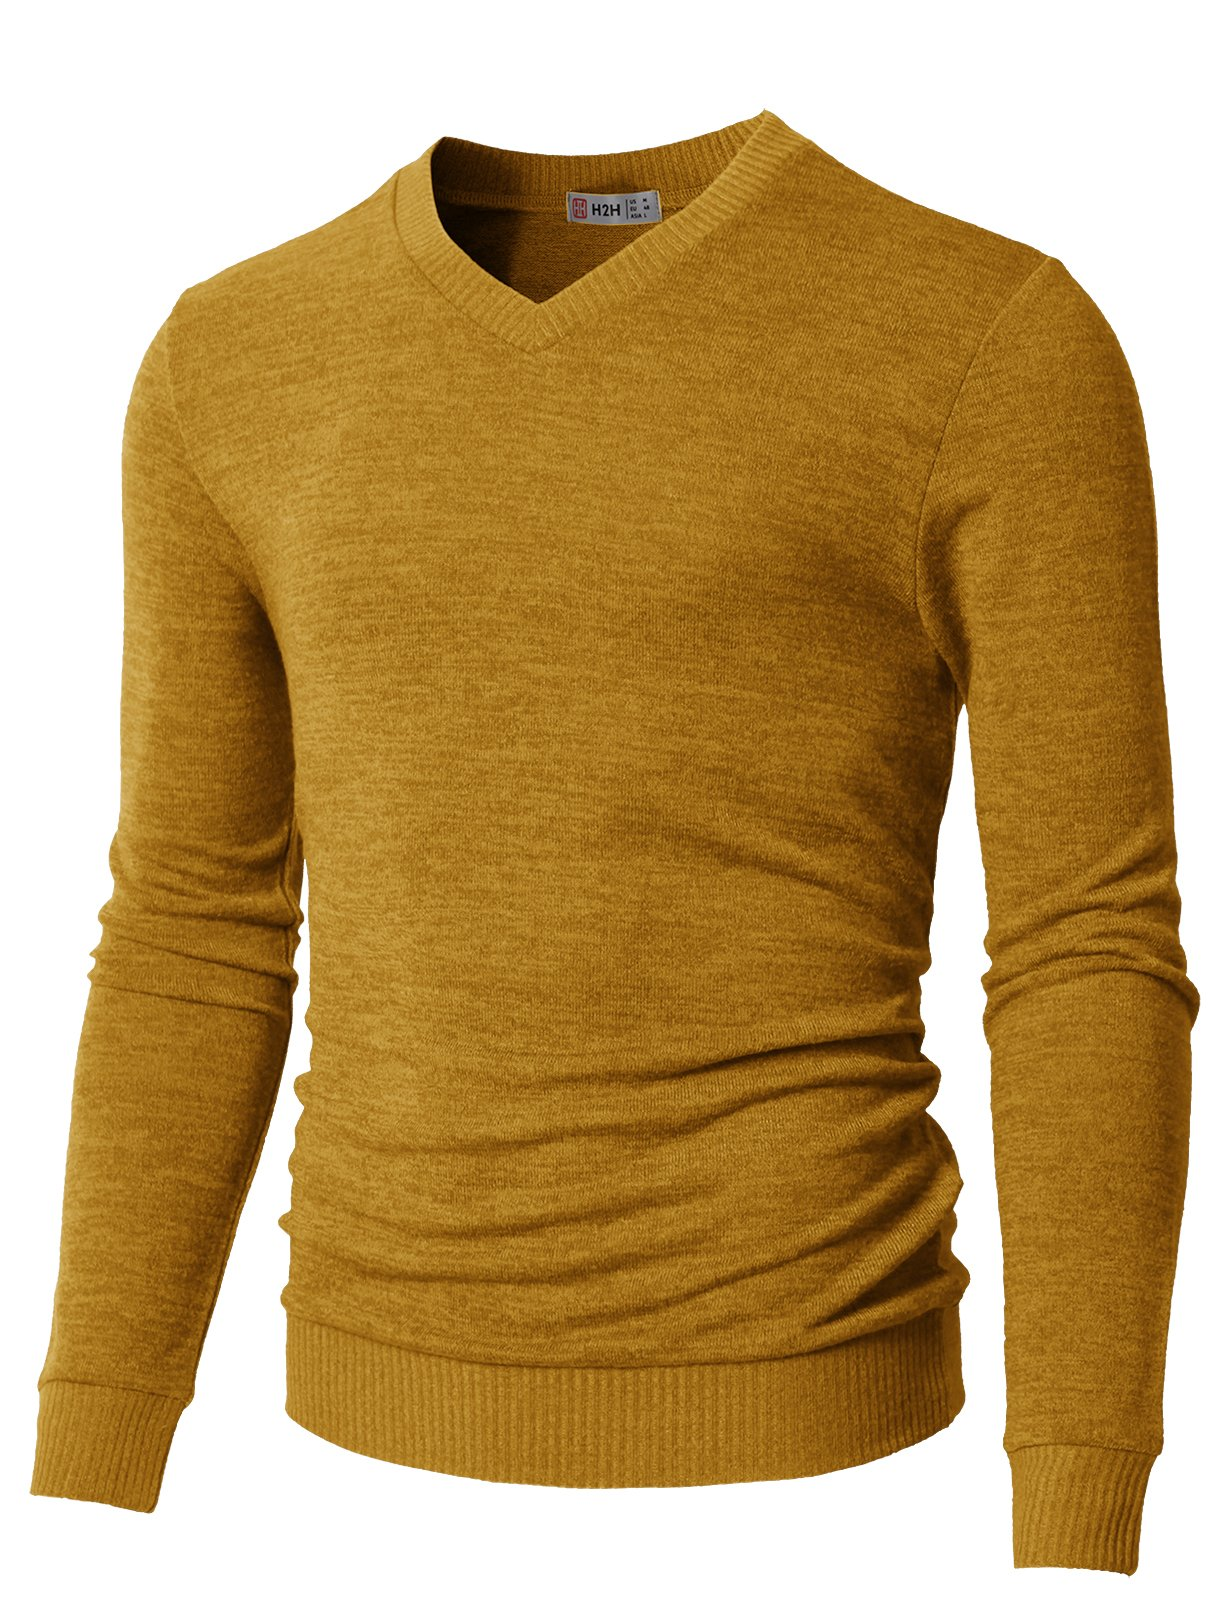 H2H Mens City Casual Knitwear Casual Shawl Collar Cardigan Sweaters Mustard US S/Asia M (CMOSWL018) by H2H